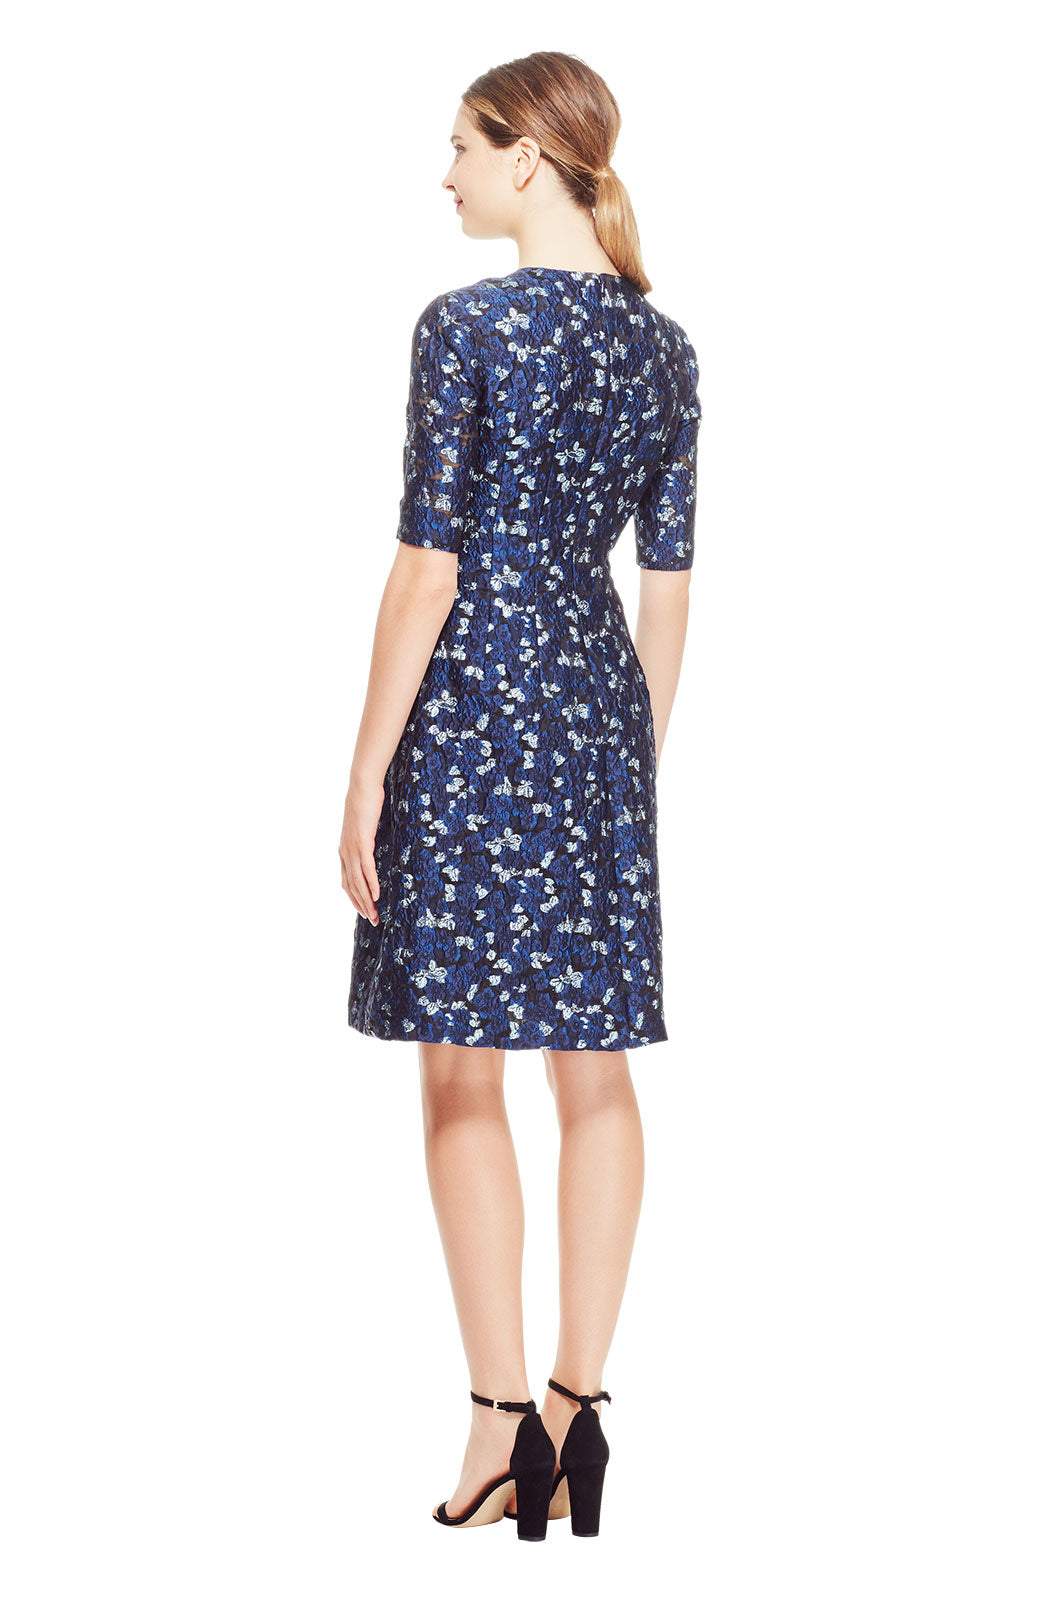 Petite Floral Fil Coupé Holly Elbow Sleeve Dress